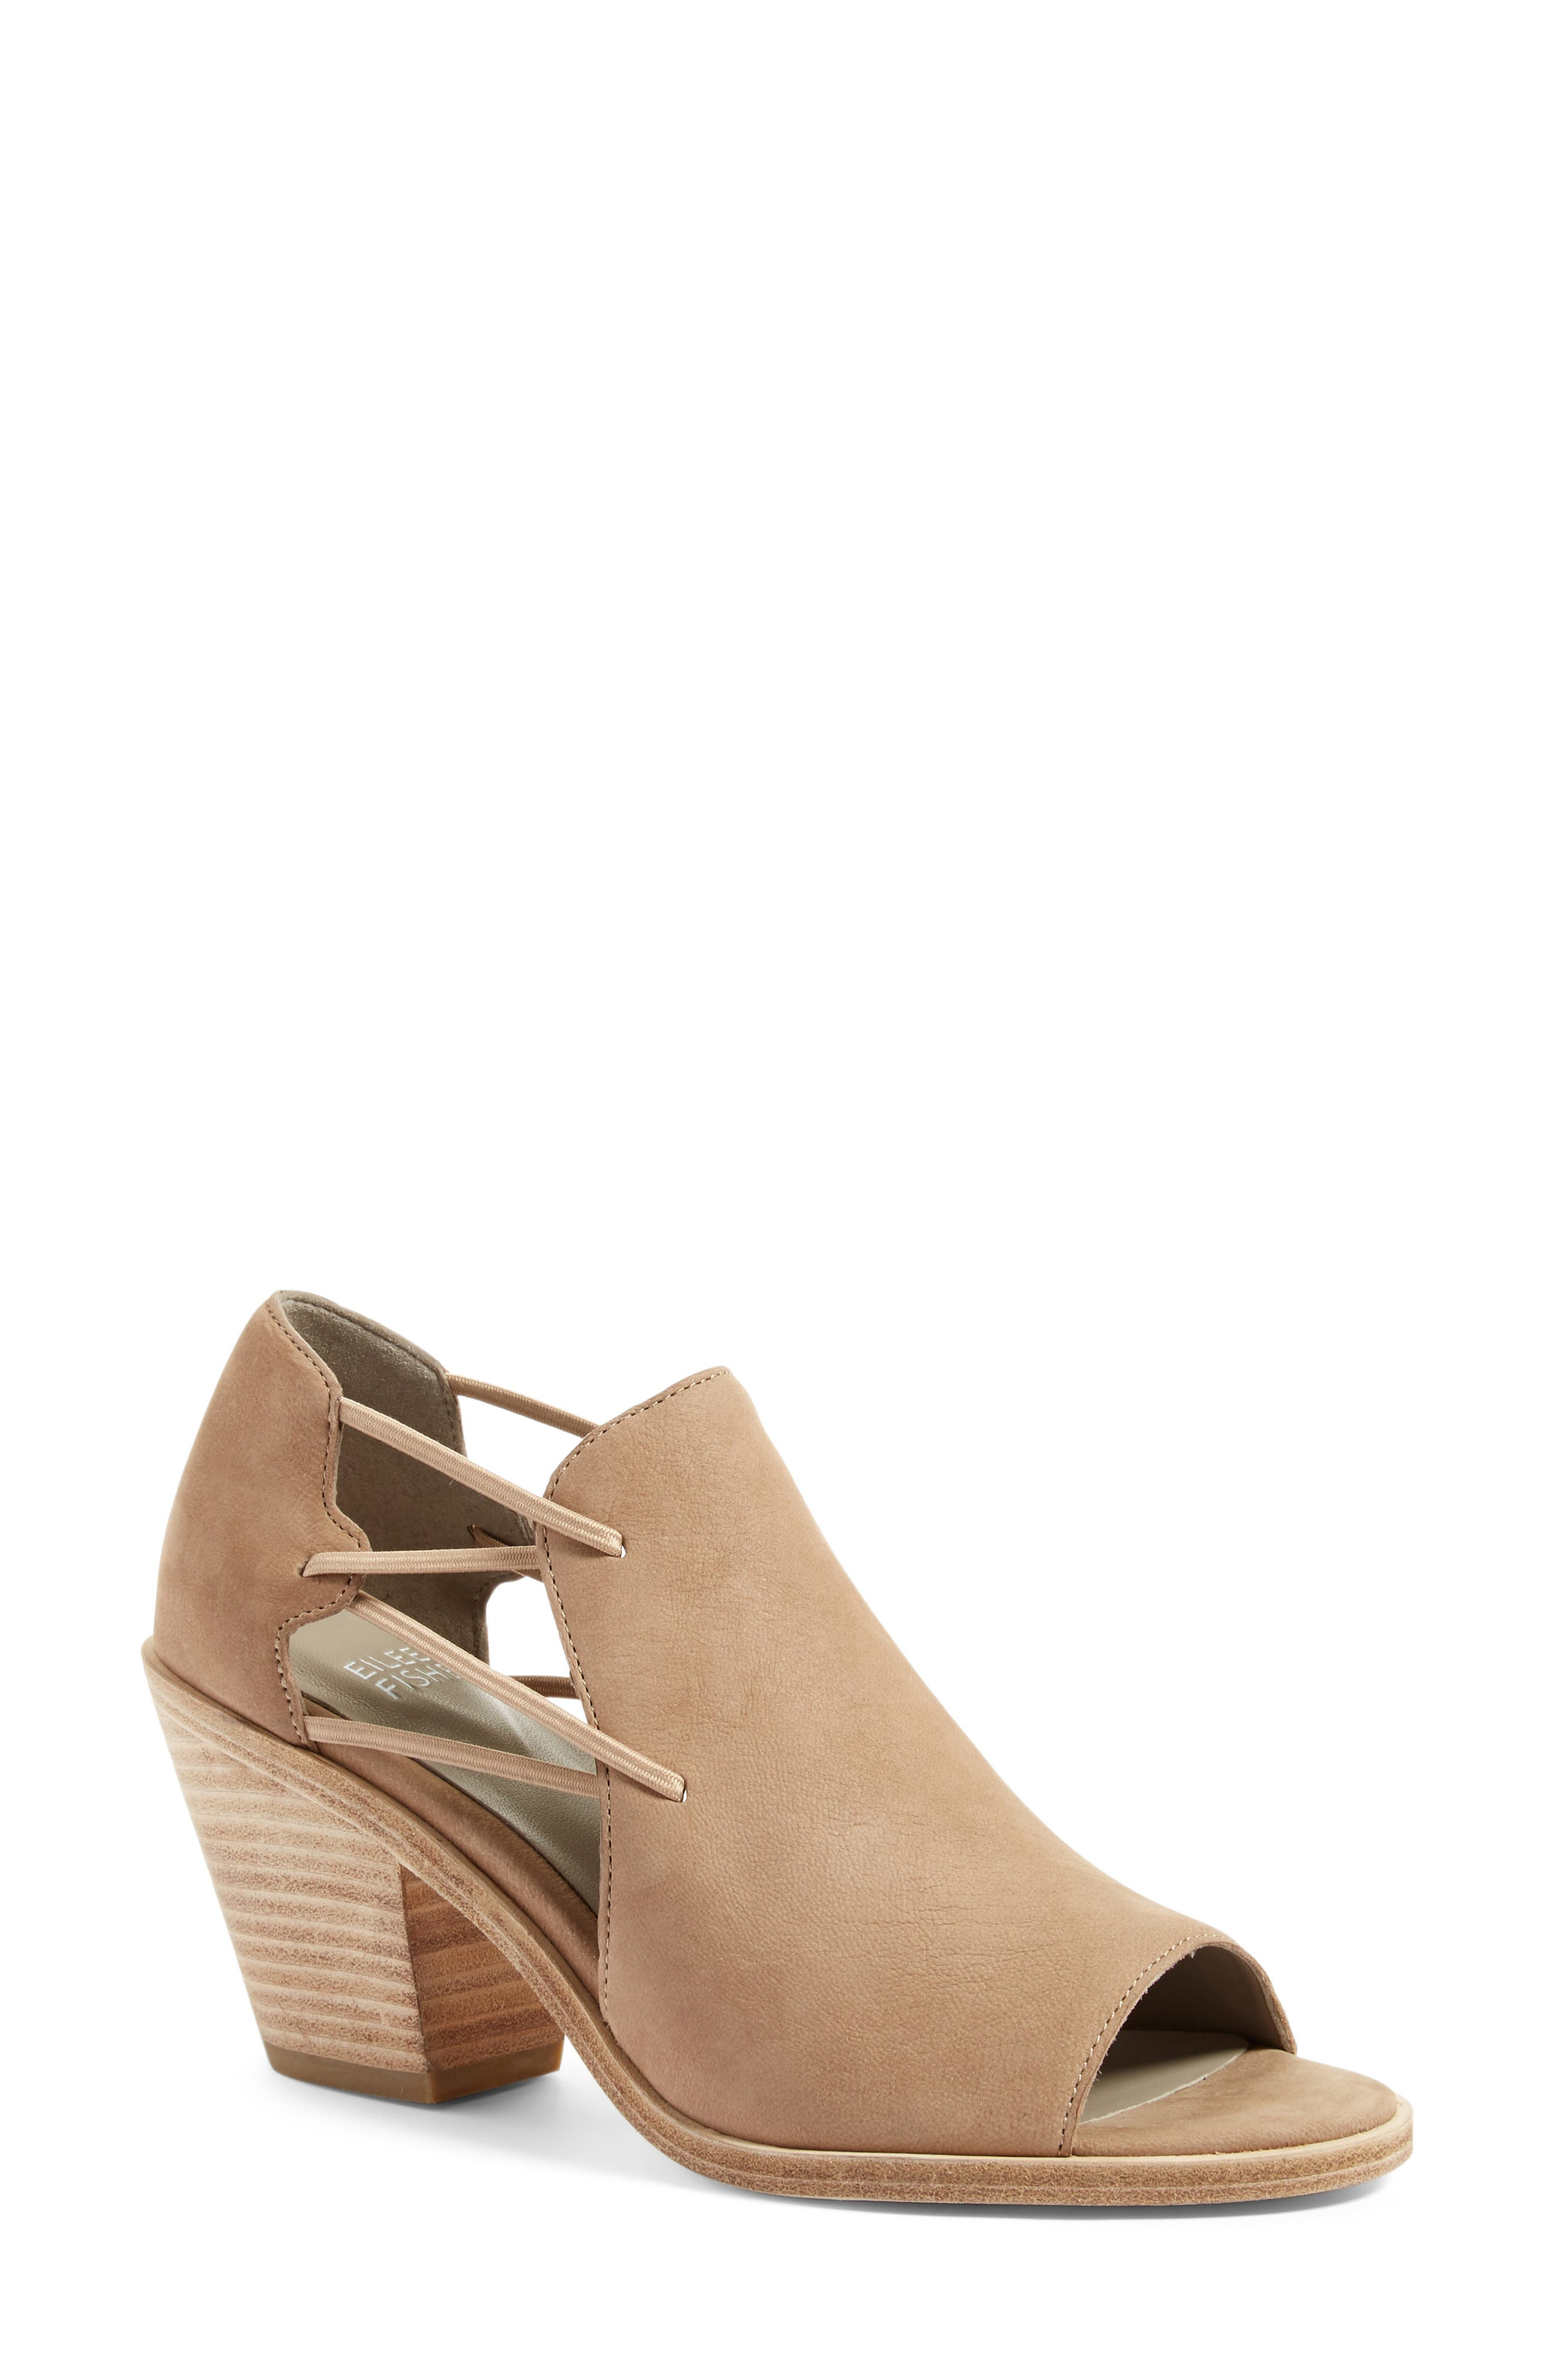 Eileen Fisher Nikki Peep Toe Sandal (Women)